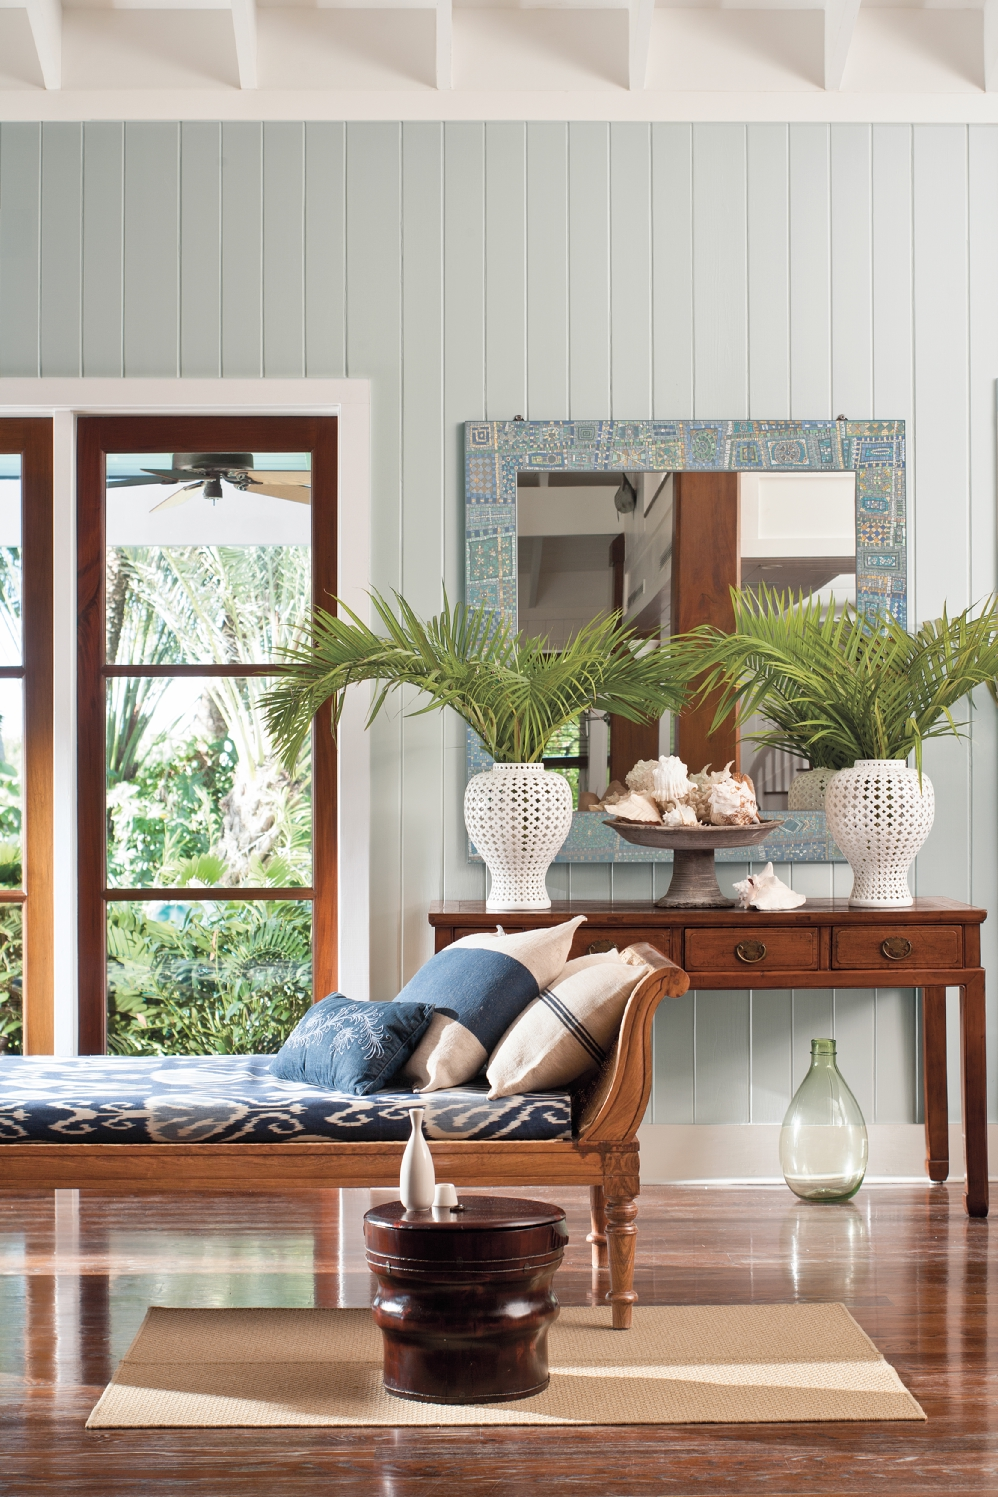 Pale_Blue_Interior_of_Tropical_Home.jpg